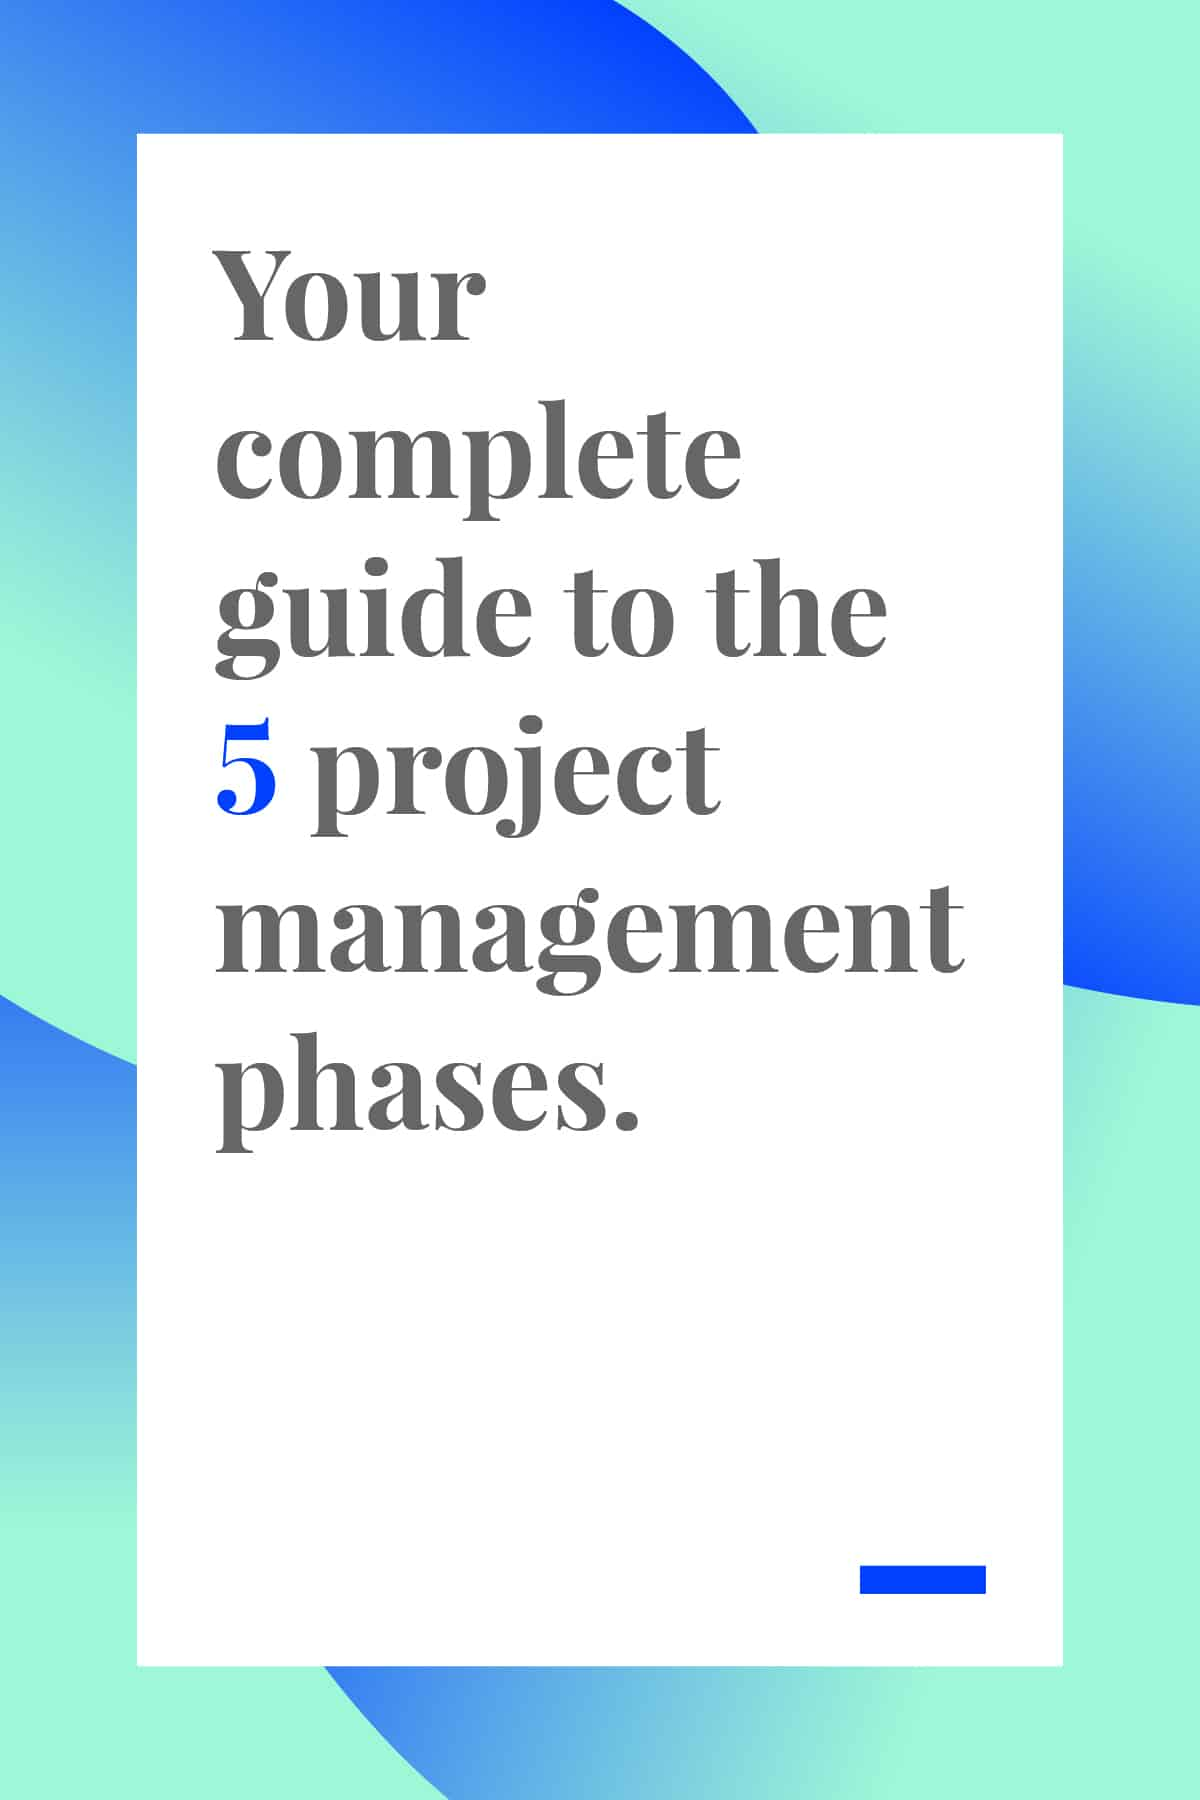 Make your next project a success with our complete guide to the 5 phases of project management. #projectmanagement